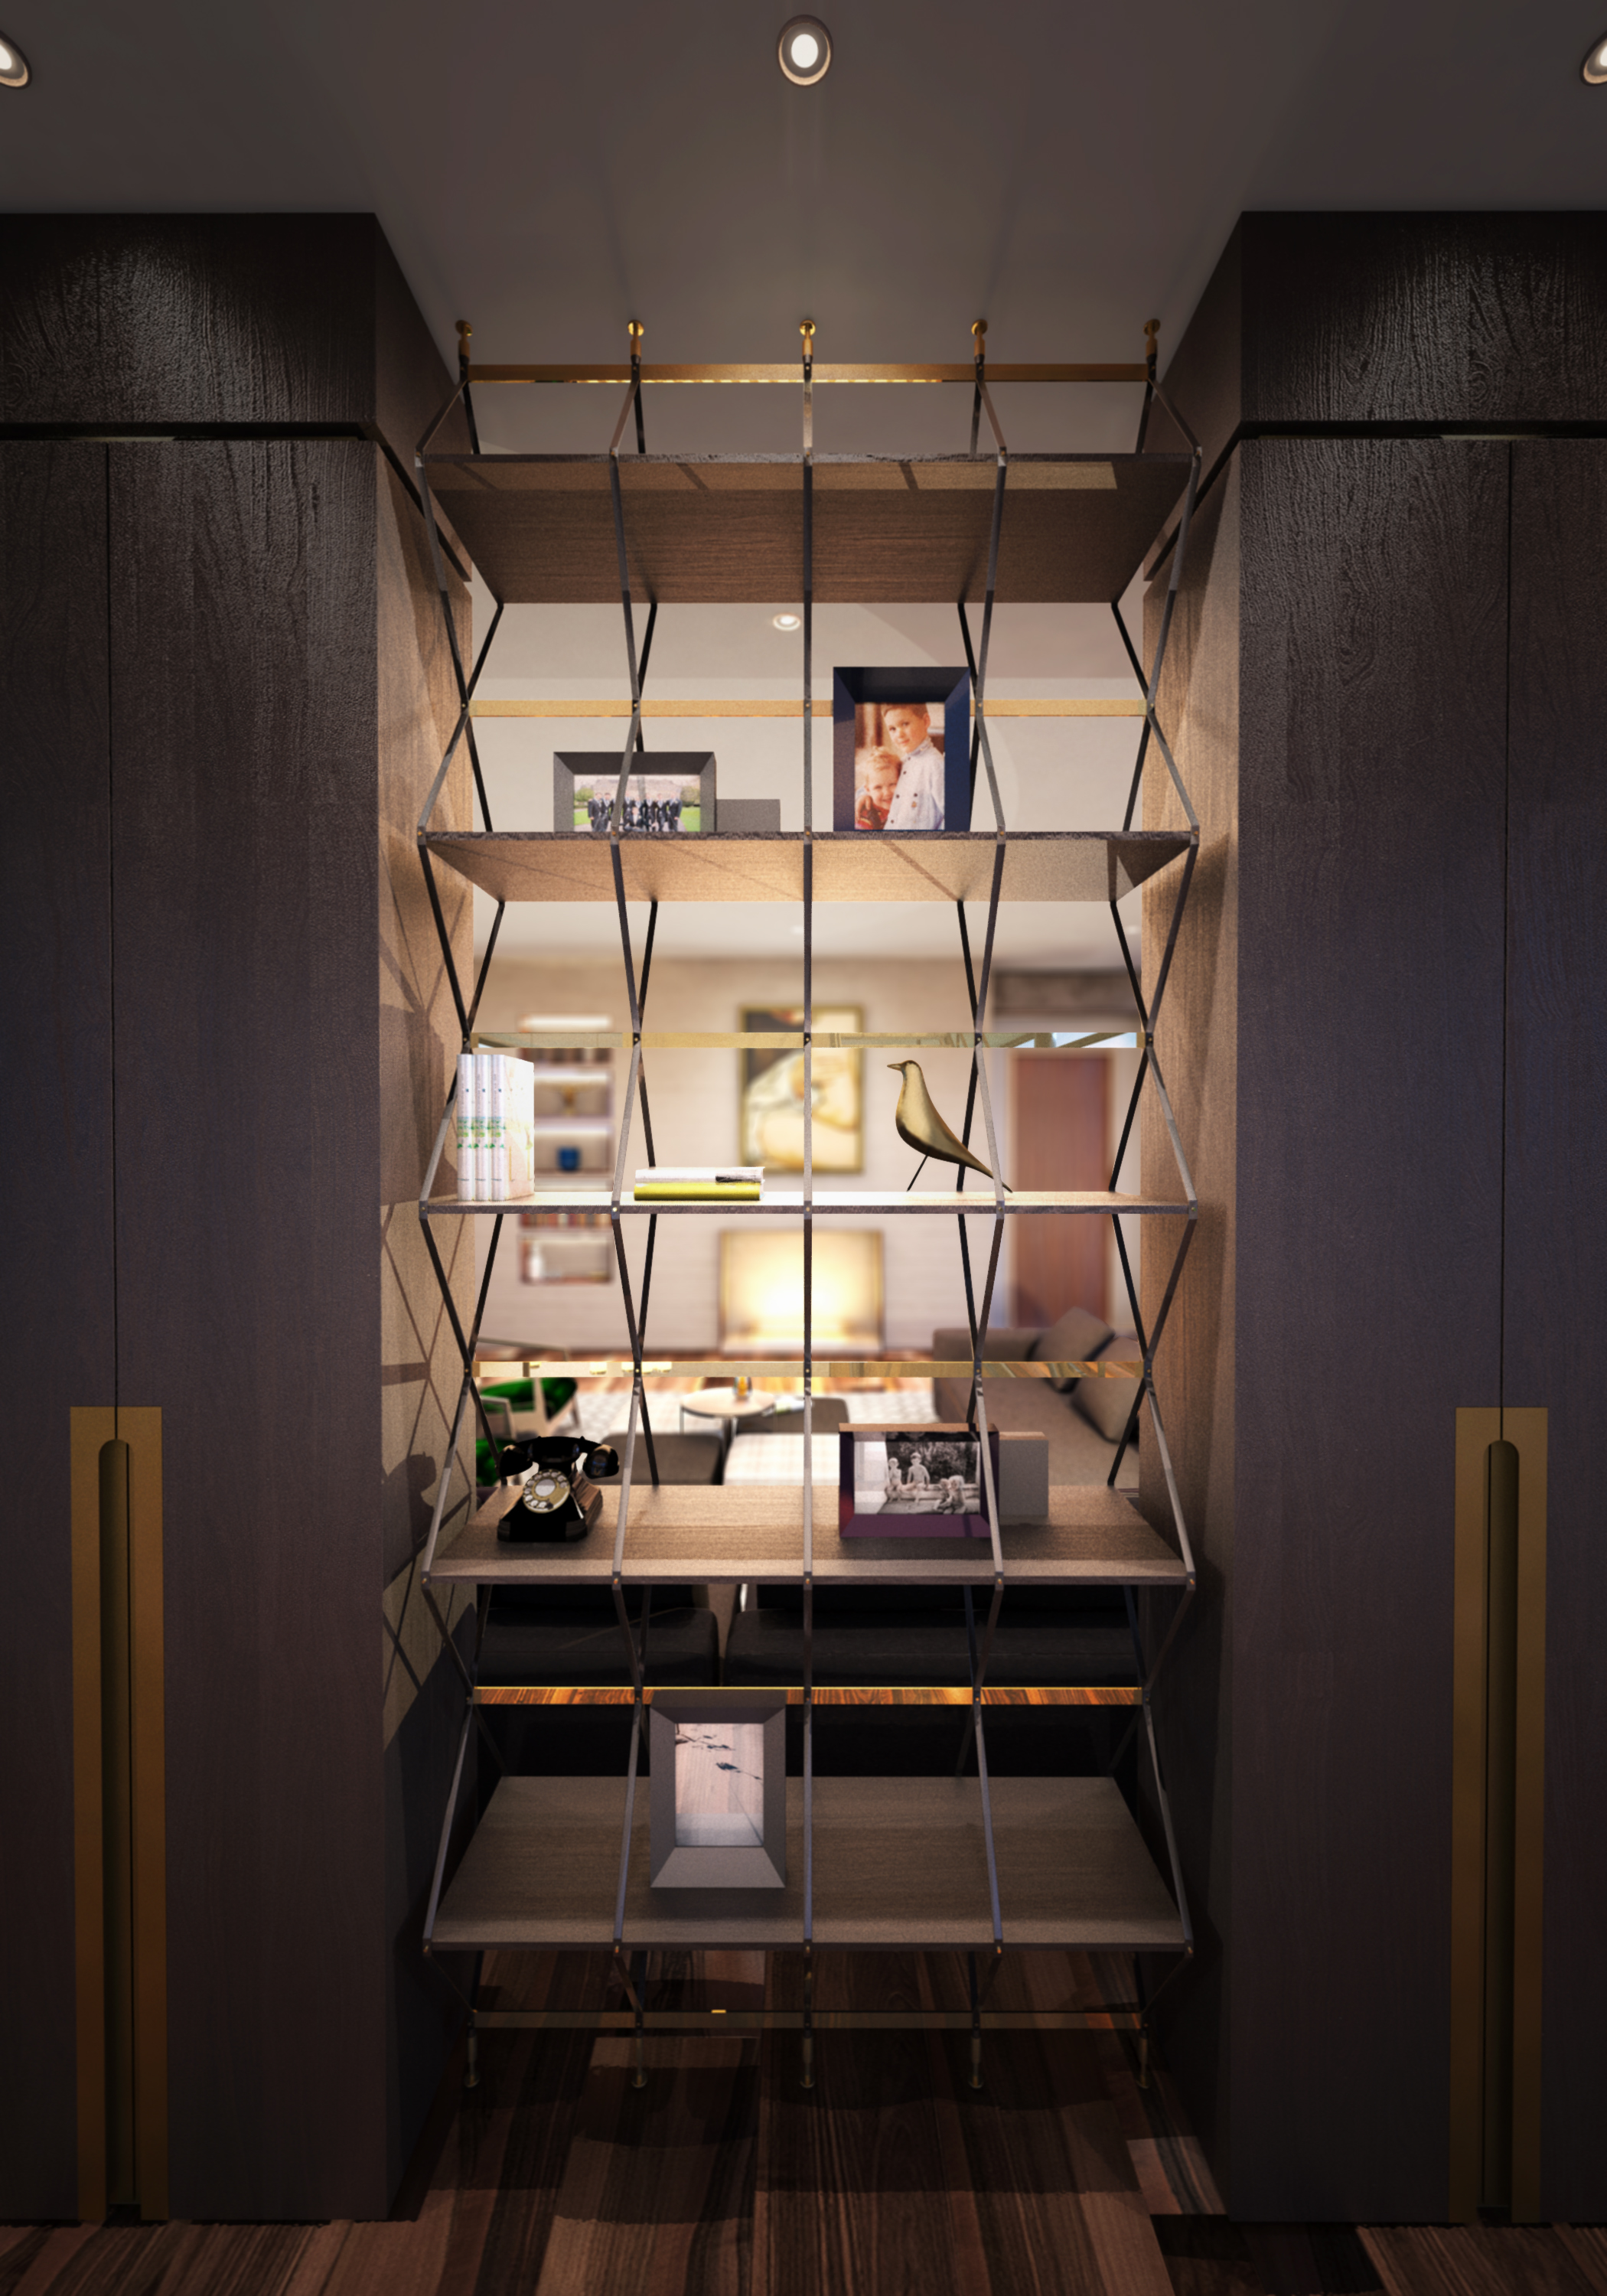 BOND_SHELVES_01- 01.jpg